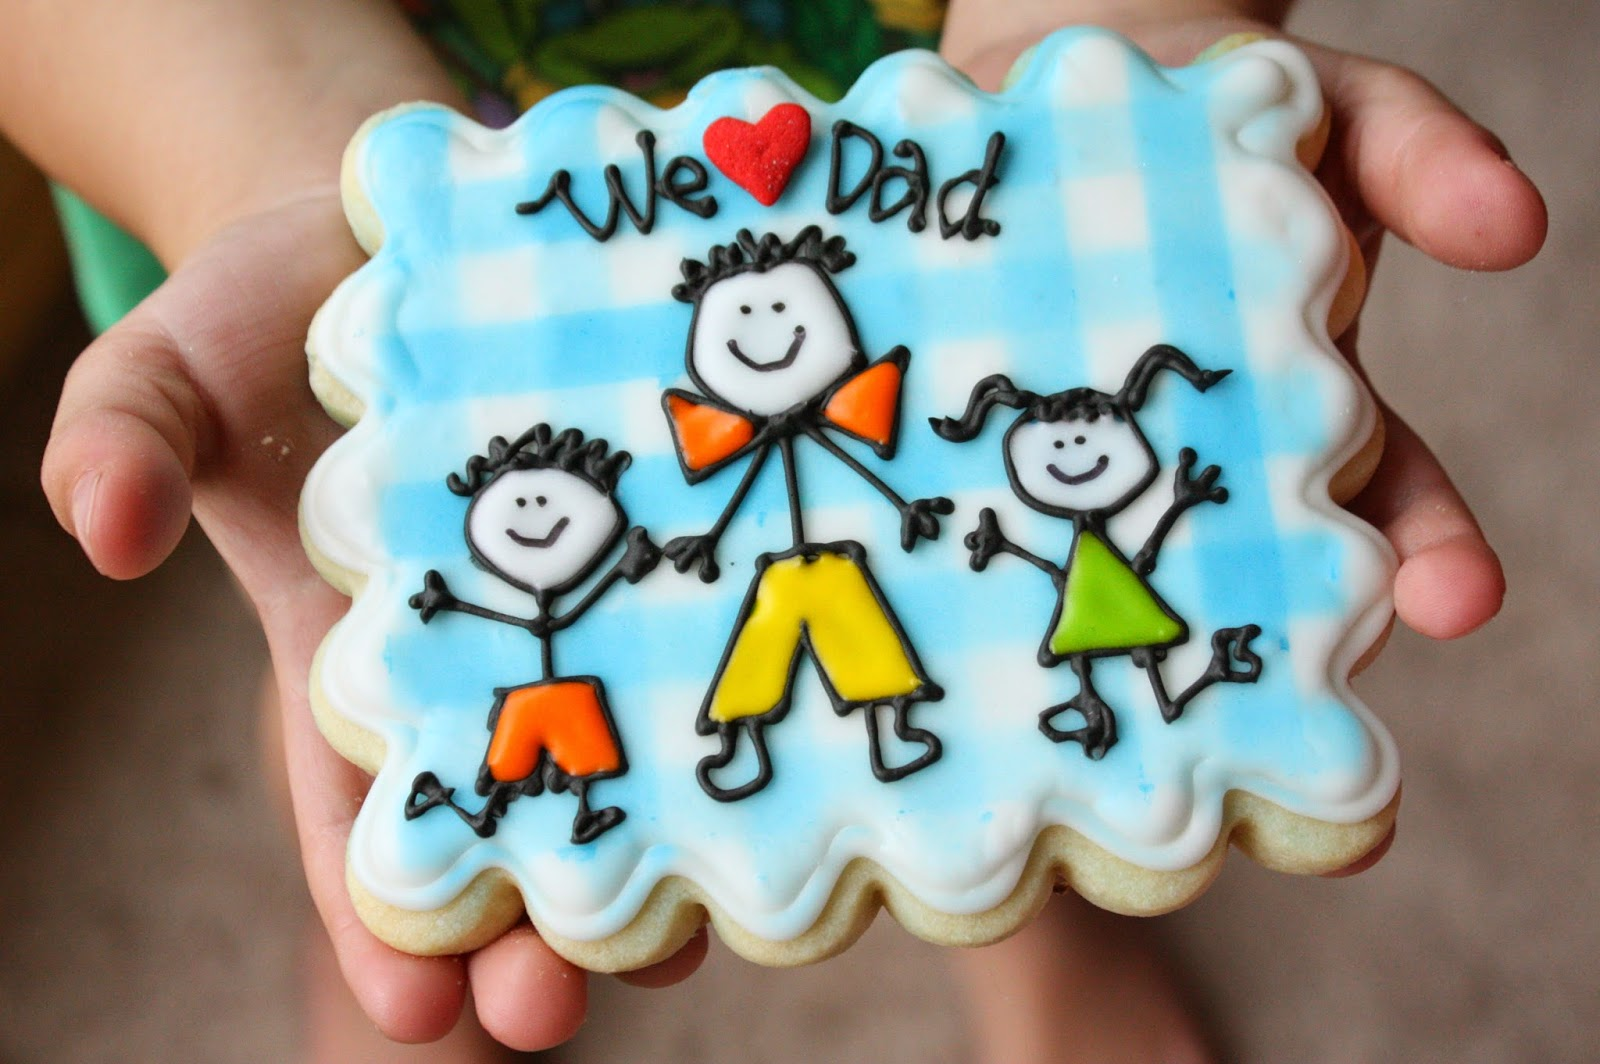 Stick figure Dad cookie 024 2